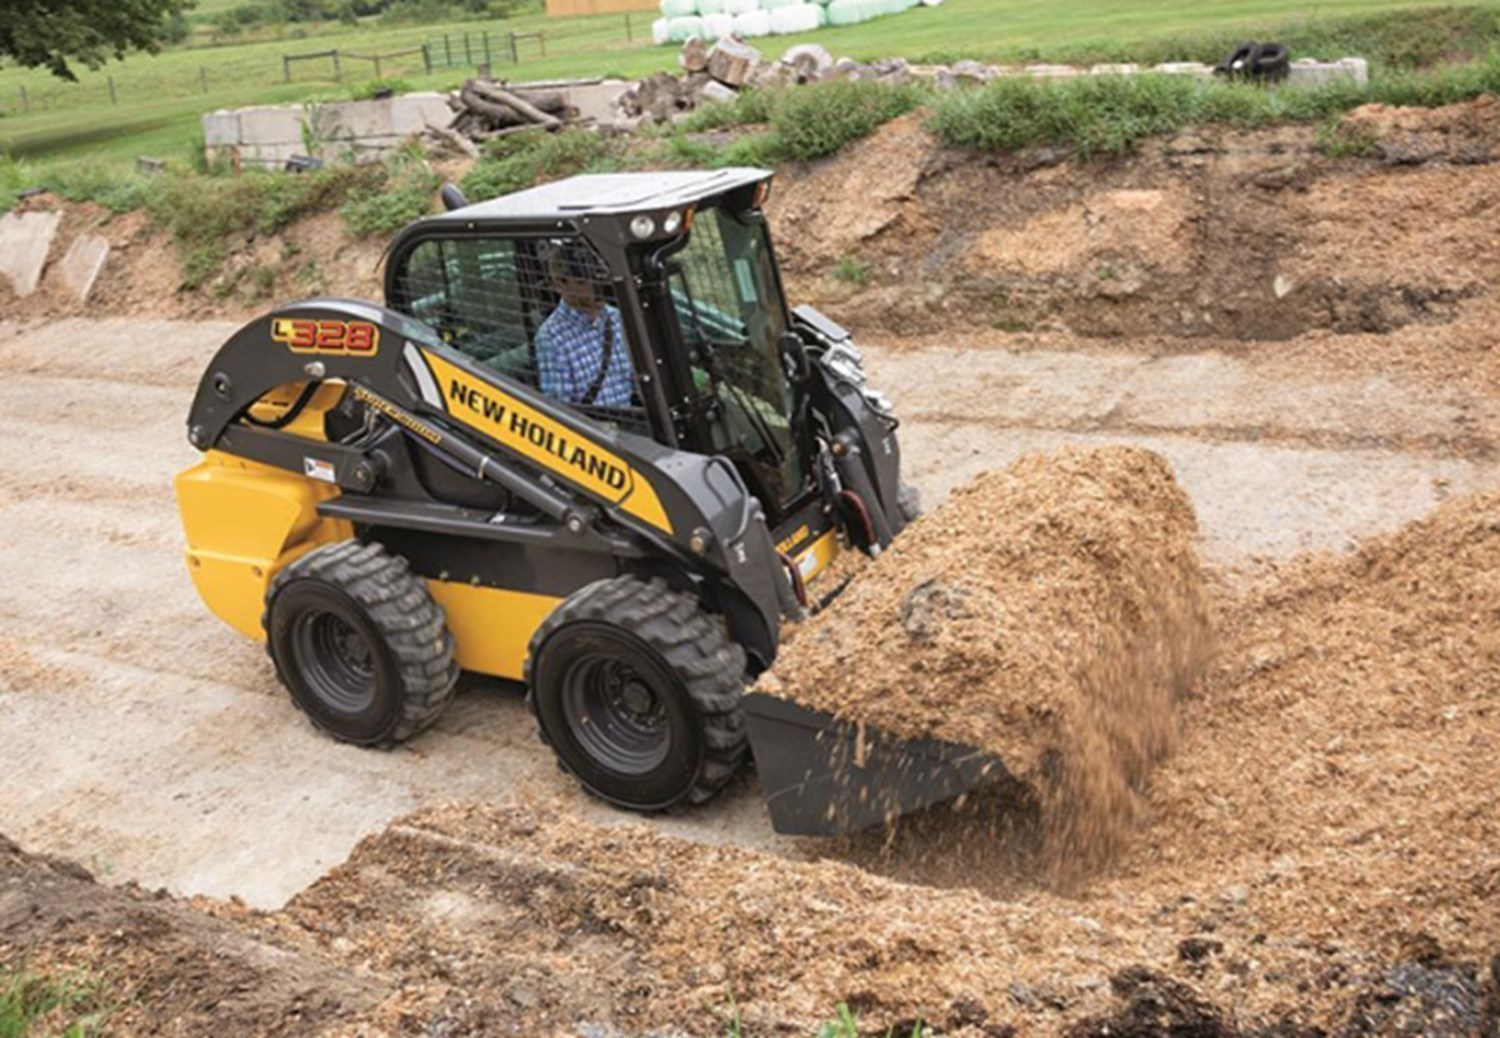 NEW HOLLAND 300 SERIES SKID STEER